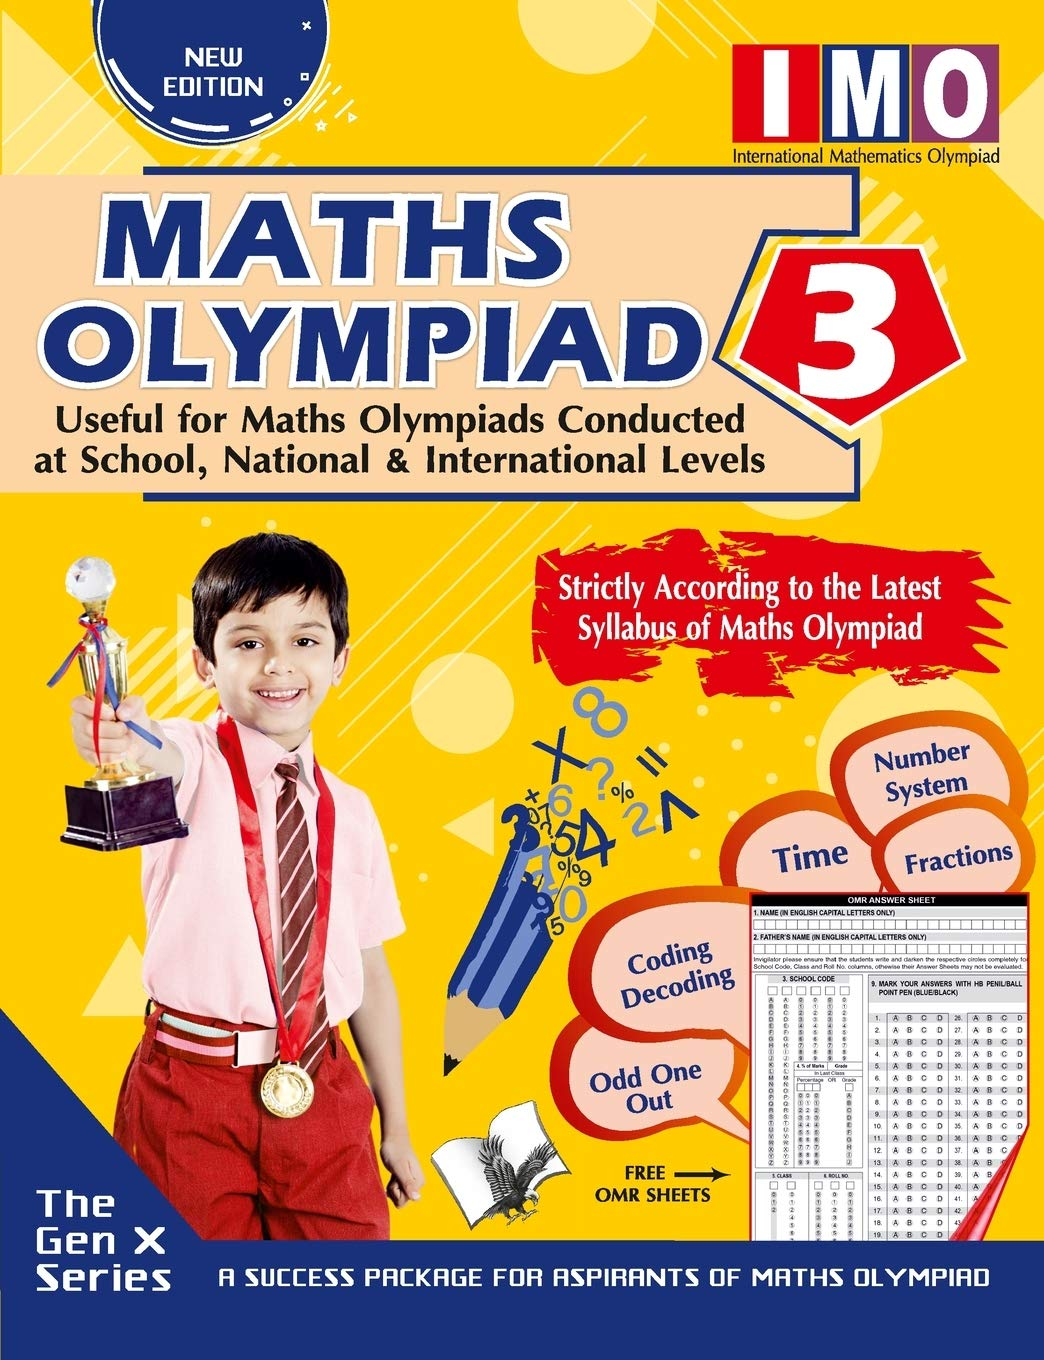 MATHS OLYMPIAD 3 (USEFUL FOR MATHS OLYMPIADS CONDUCTED AT SCHOOL, NATIONAL & INTERNATIONAL LEVELS)